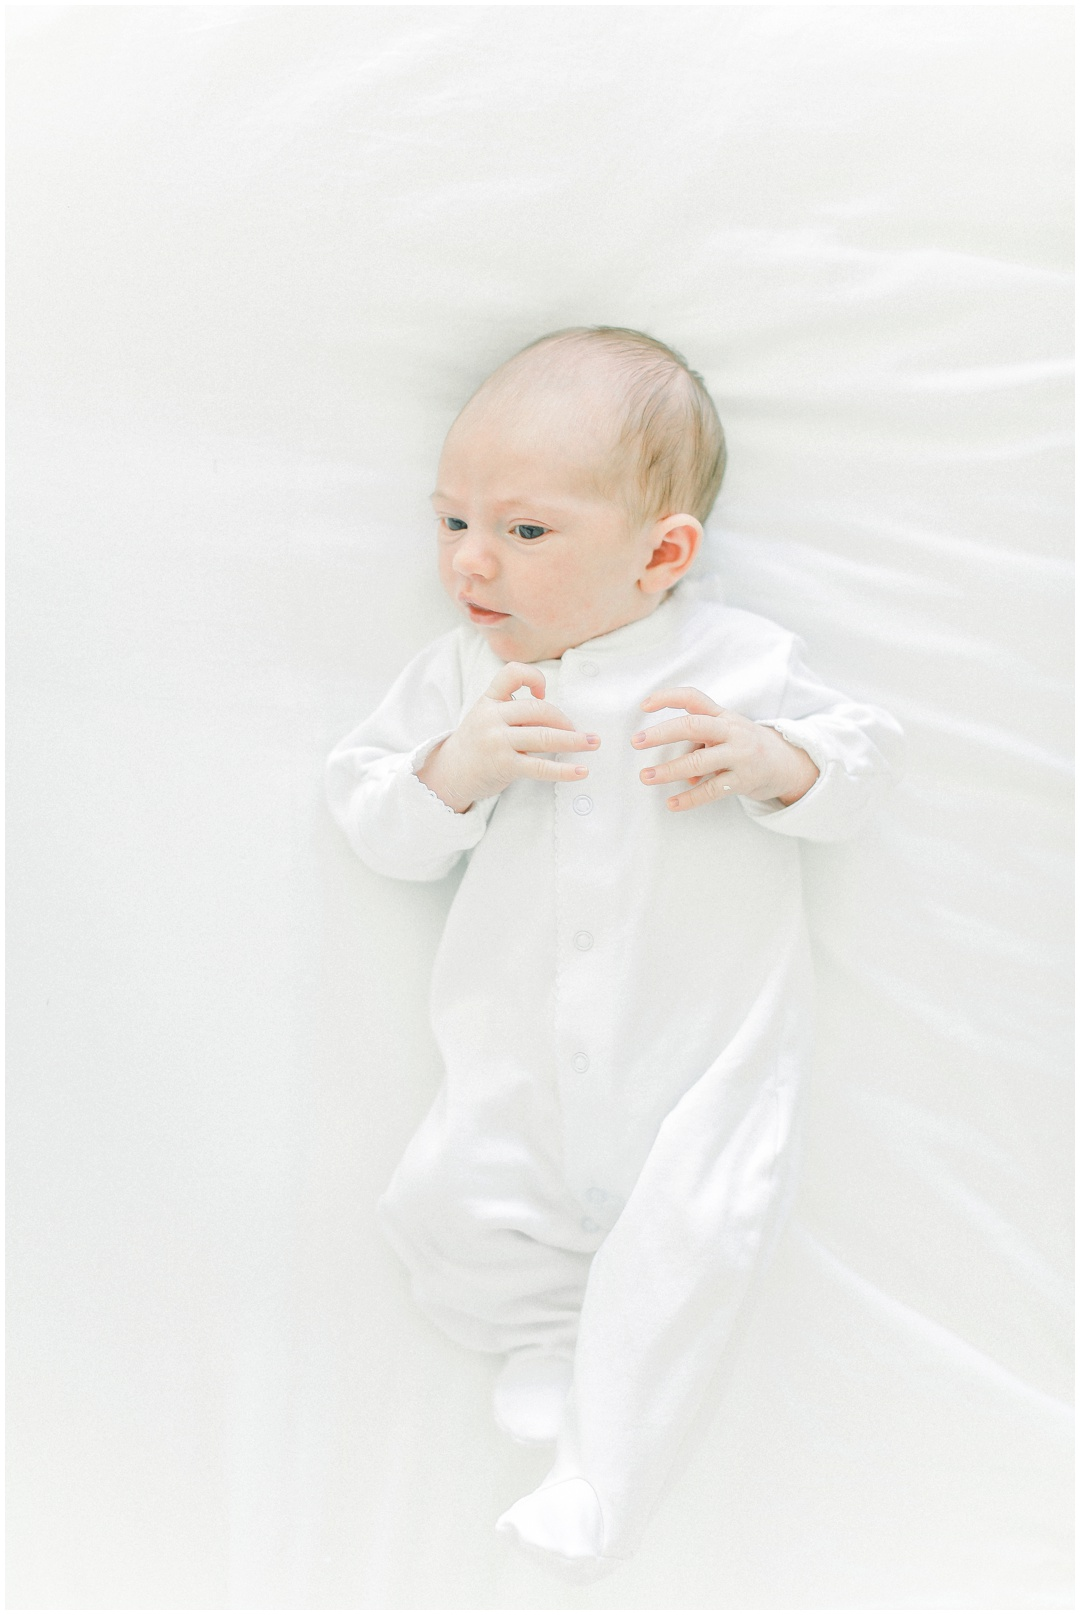 Newport_Beach_Newborn_Light_Airy_Natural_Photographer_Newport_Beach_Photographer_Orange_County_Family_Photographer_Cori_Kleckner_Photography_Newport_Beach_Photographer_newborn_Stephanie_Messiter_Steinhafel_David_Steinhafel_3856.jpg